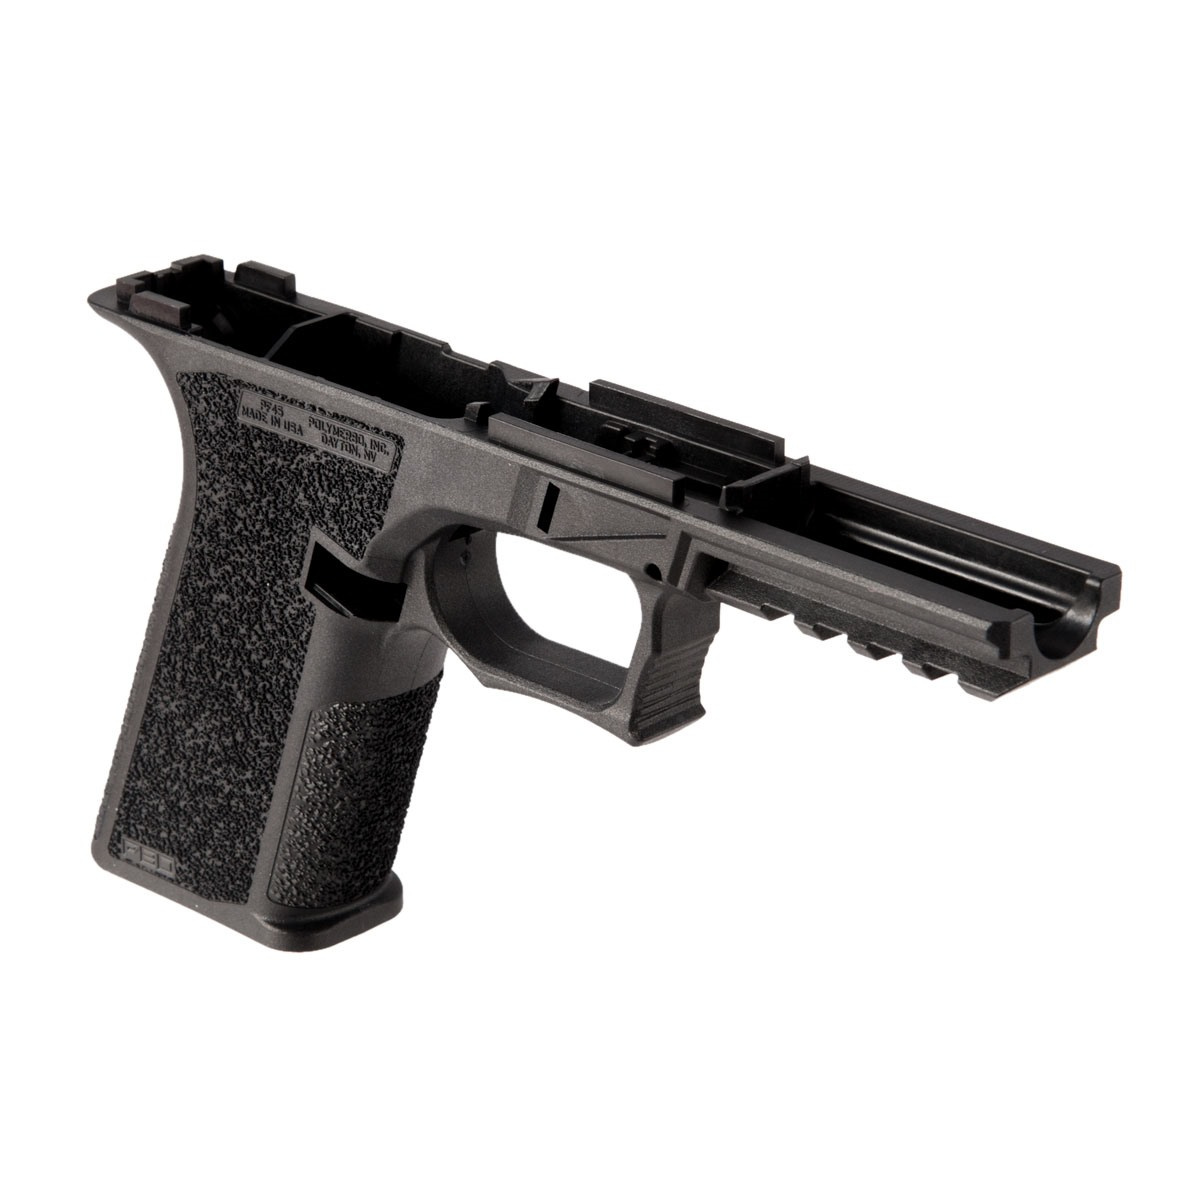 POLYMER80 PF45 80% STANDARD TEXTURE FRAME FOR GLOCK 20,21 | Brownells